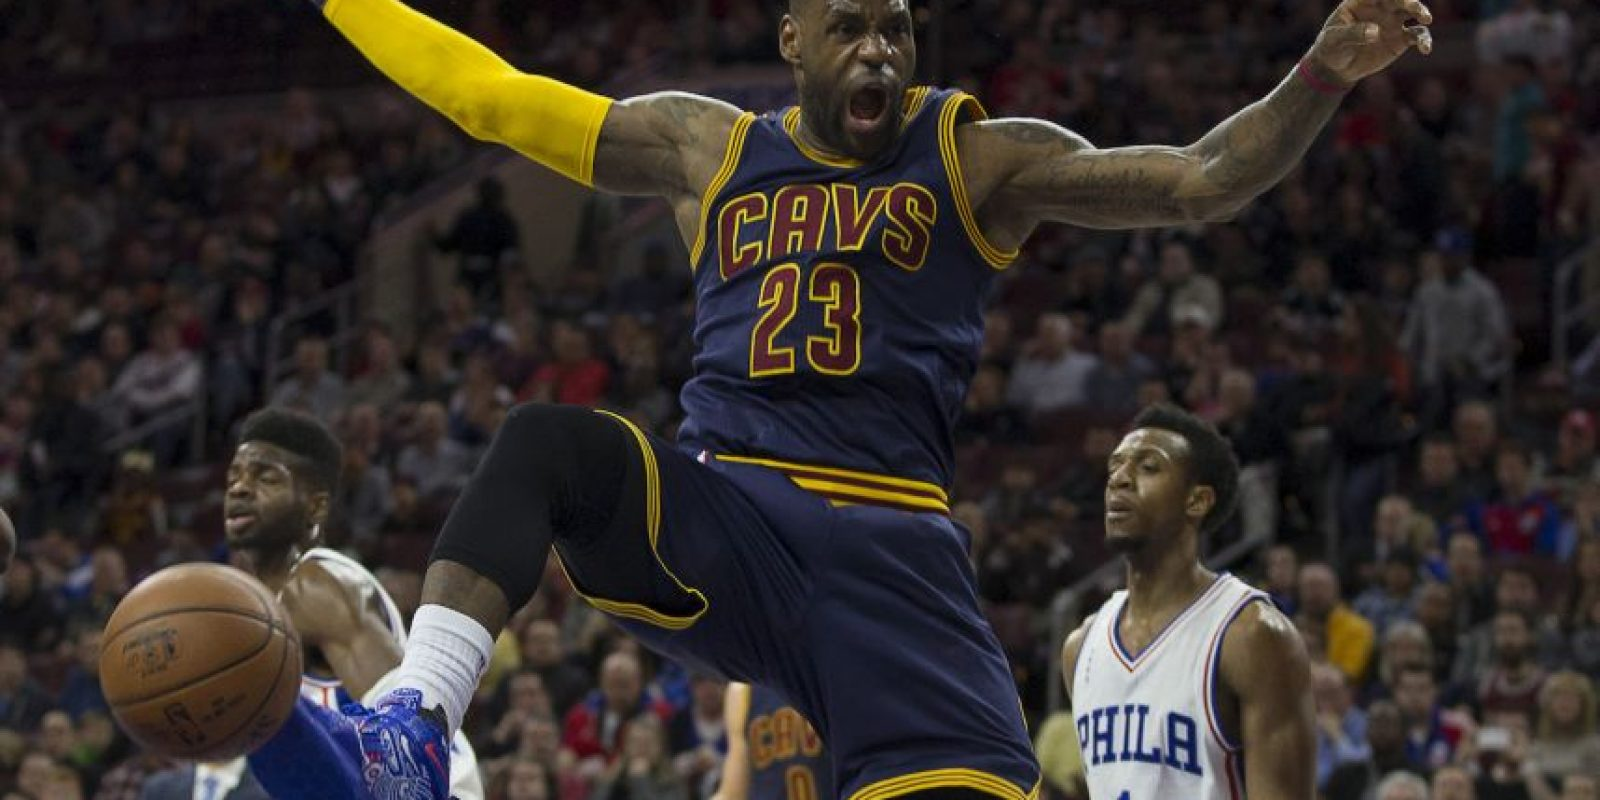 9. LeBron James (Basquetbolista) Foto: Getty Images